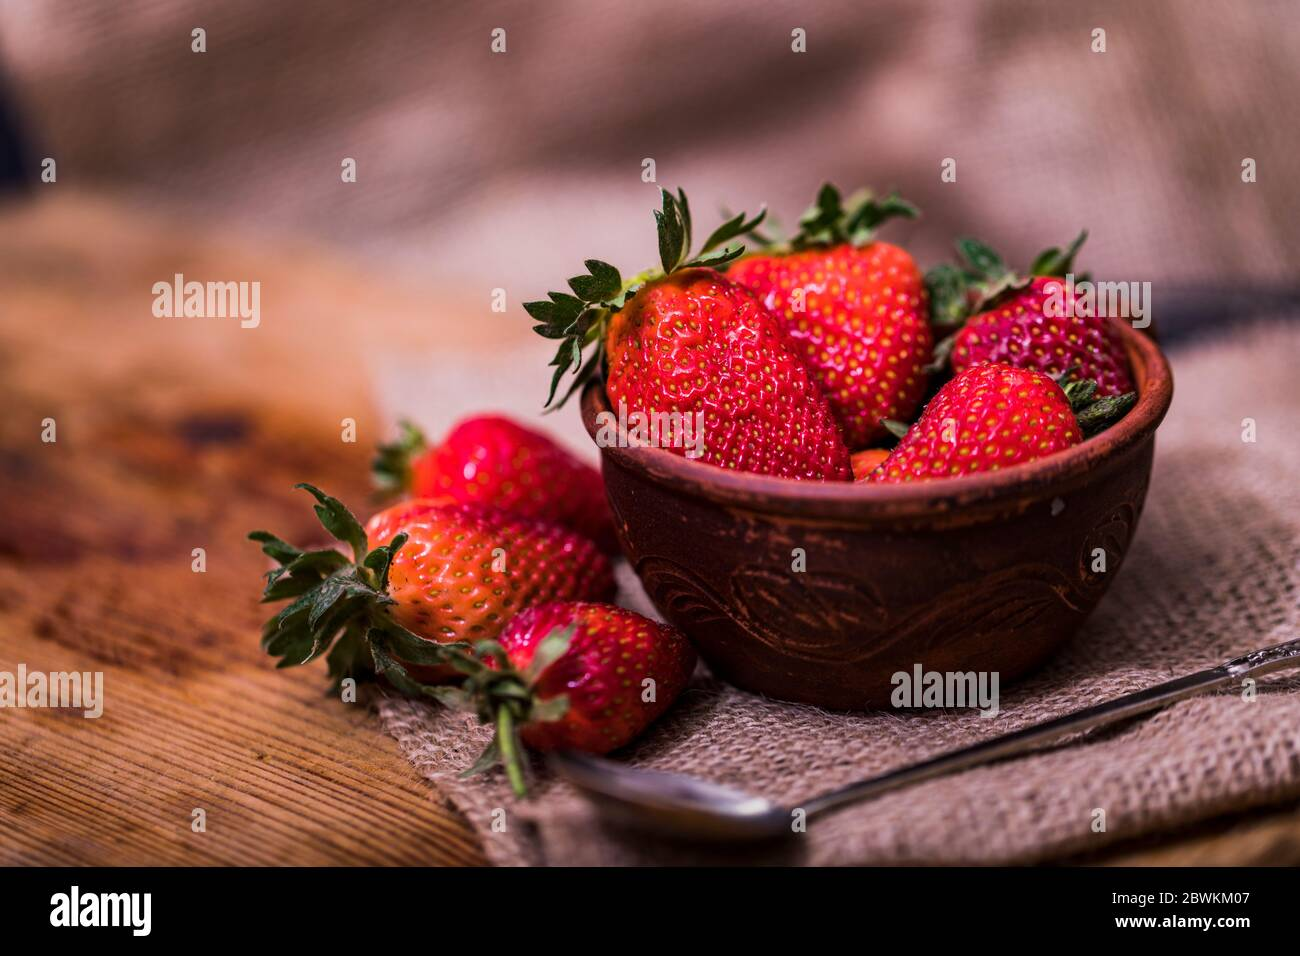 Fresh strawberries in a bowl on wooden table with low key scene. Stock Photo